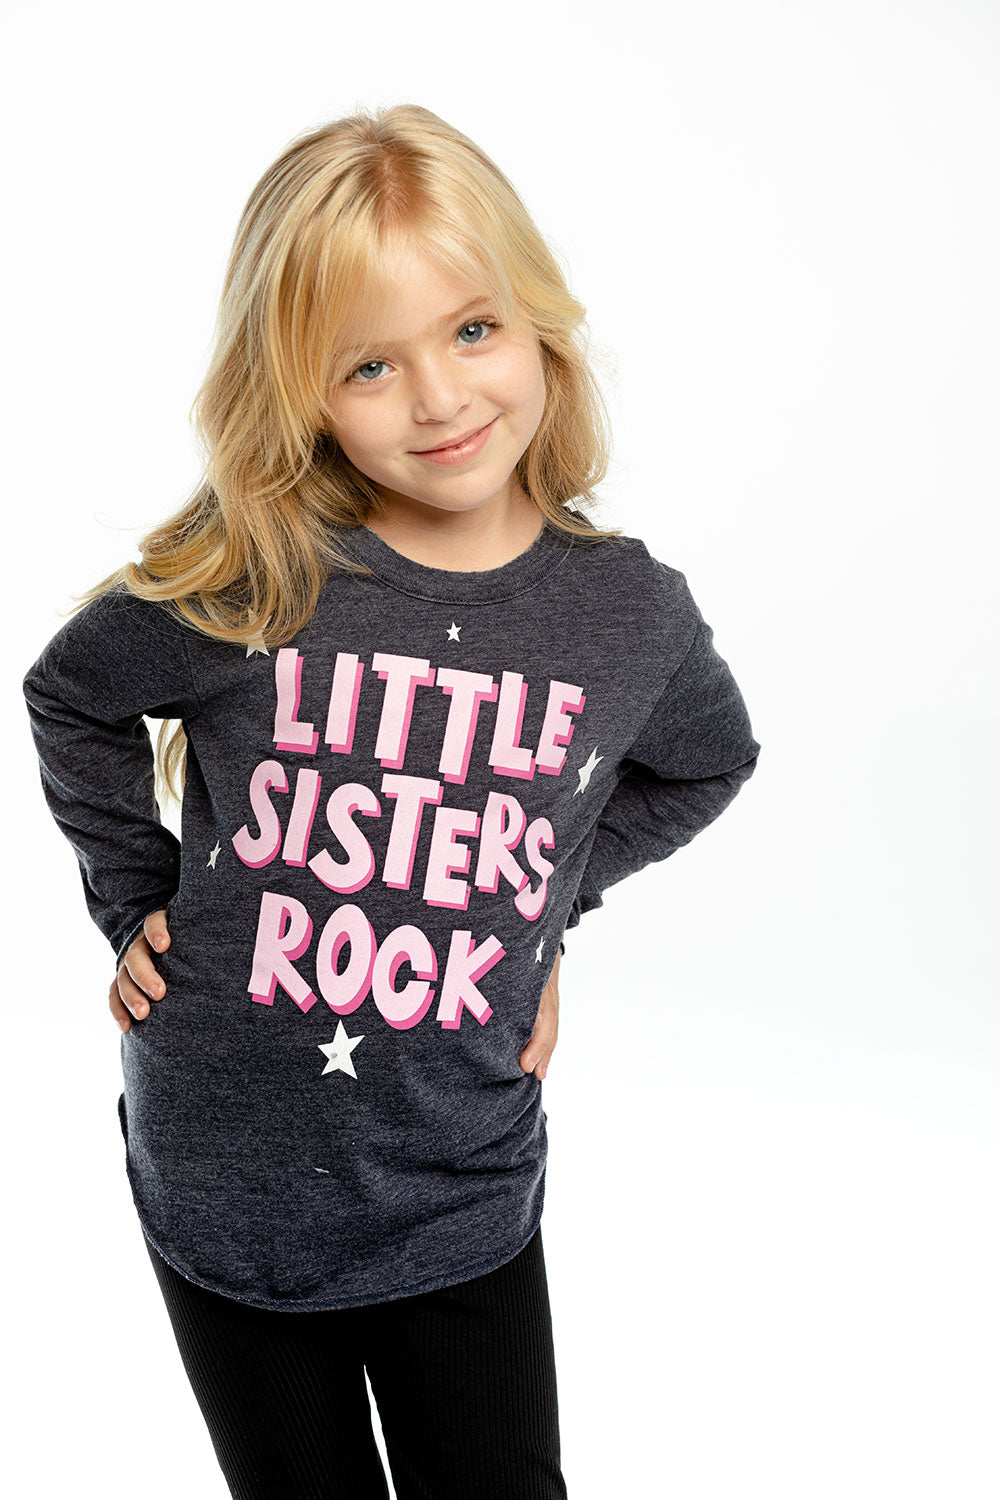 Little Sisters Rock GIRLS - chaserbrand